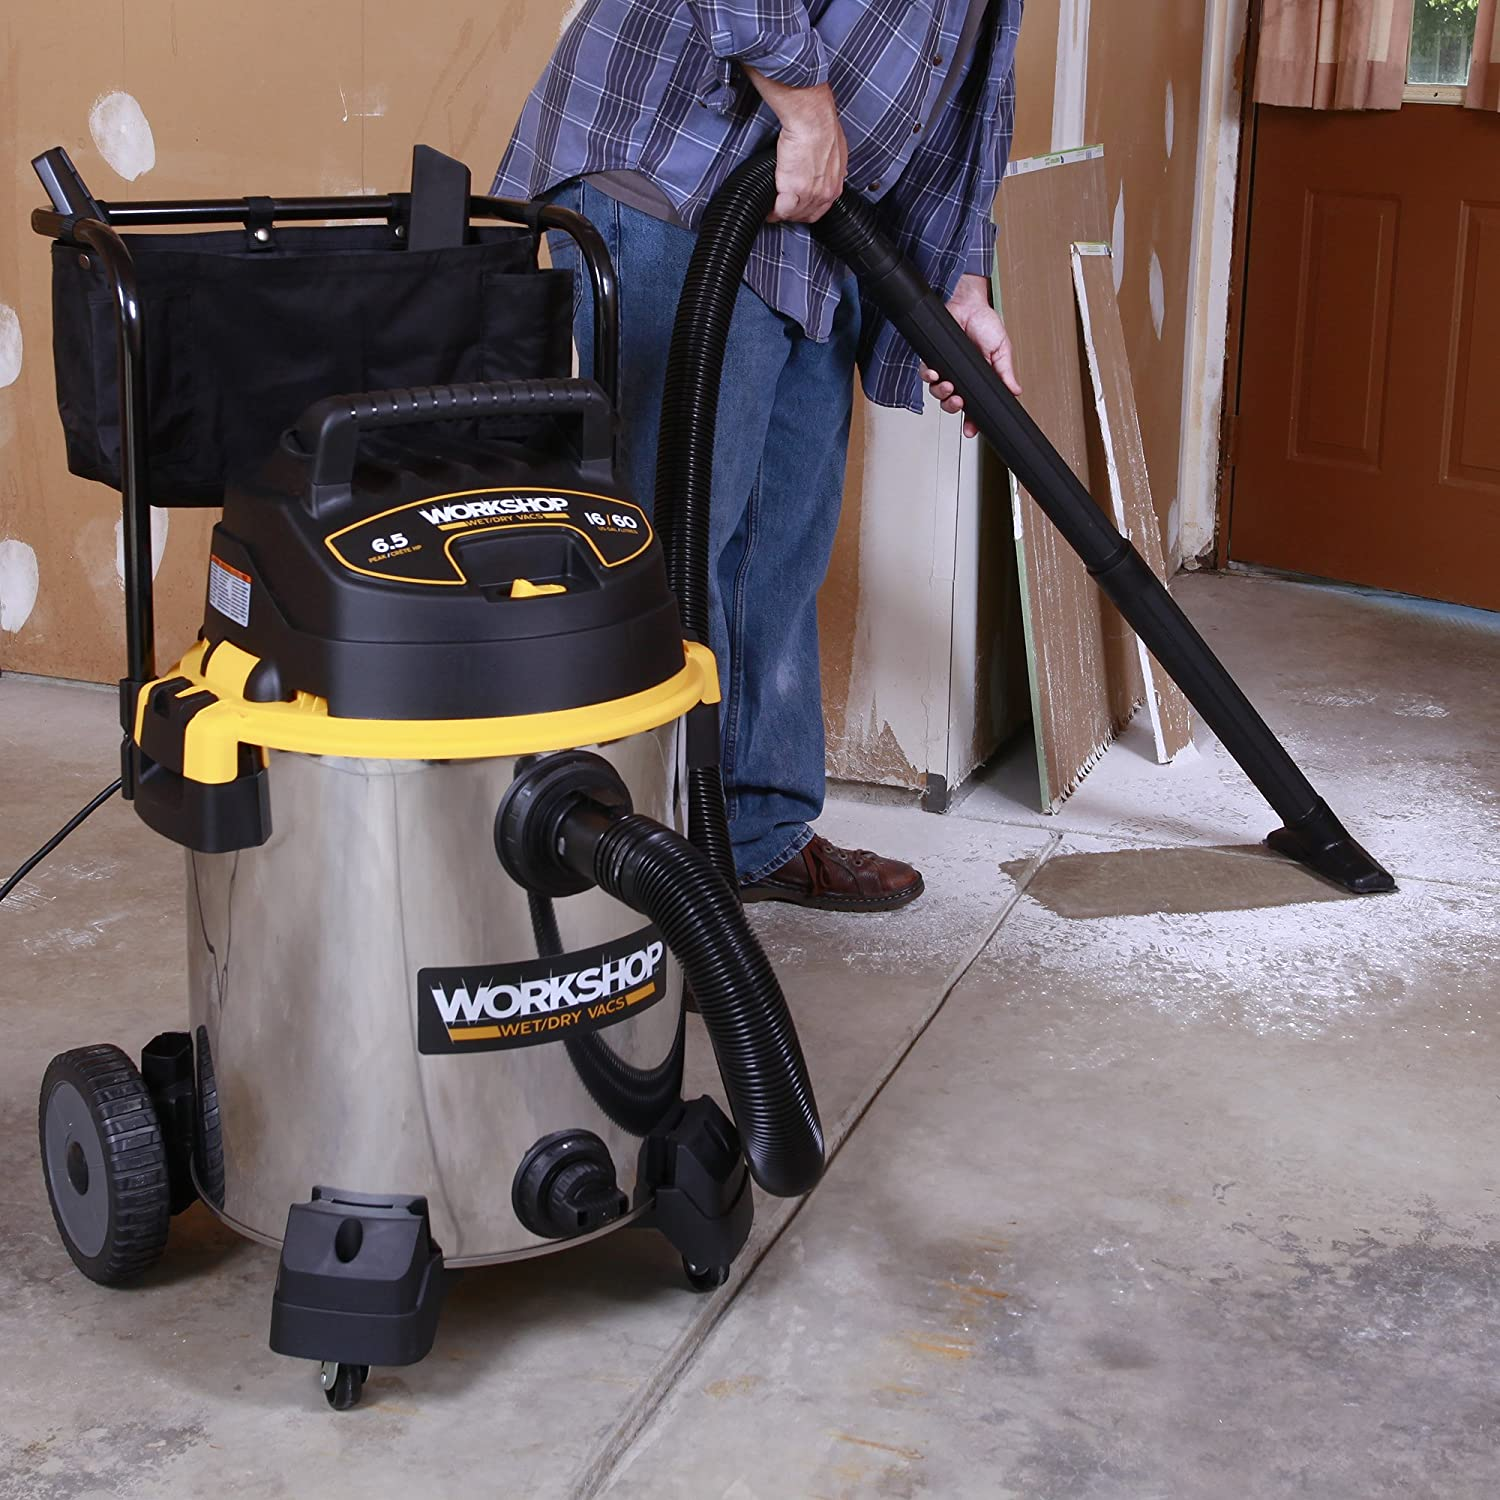 WORKSHOP Best Shop Vac Reviews